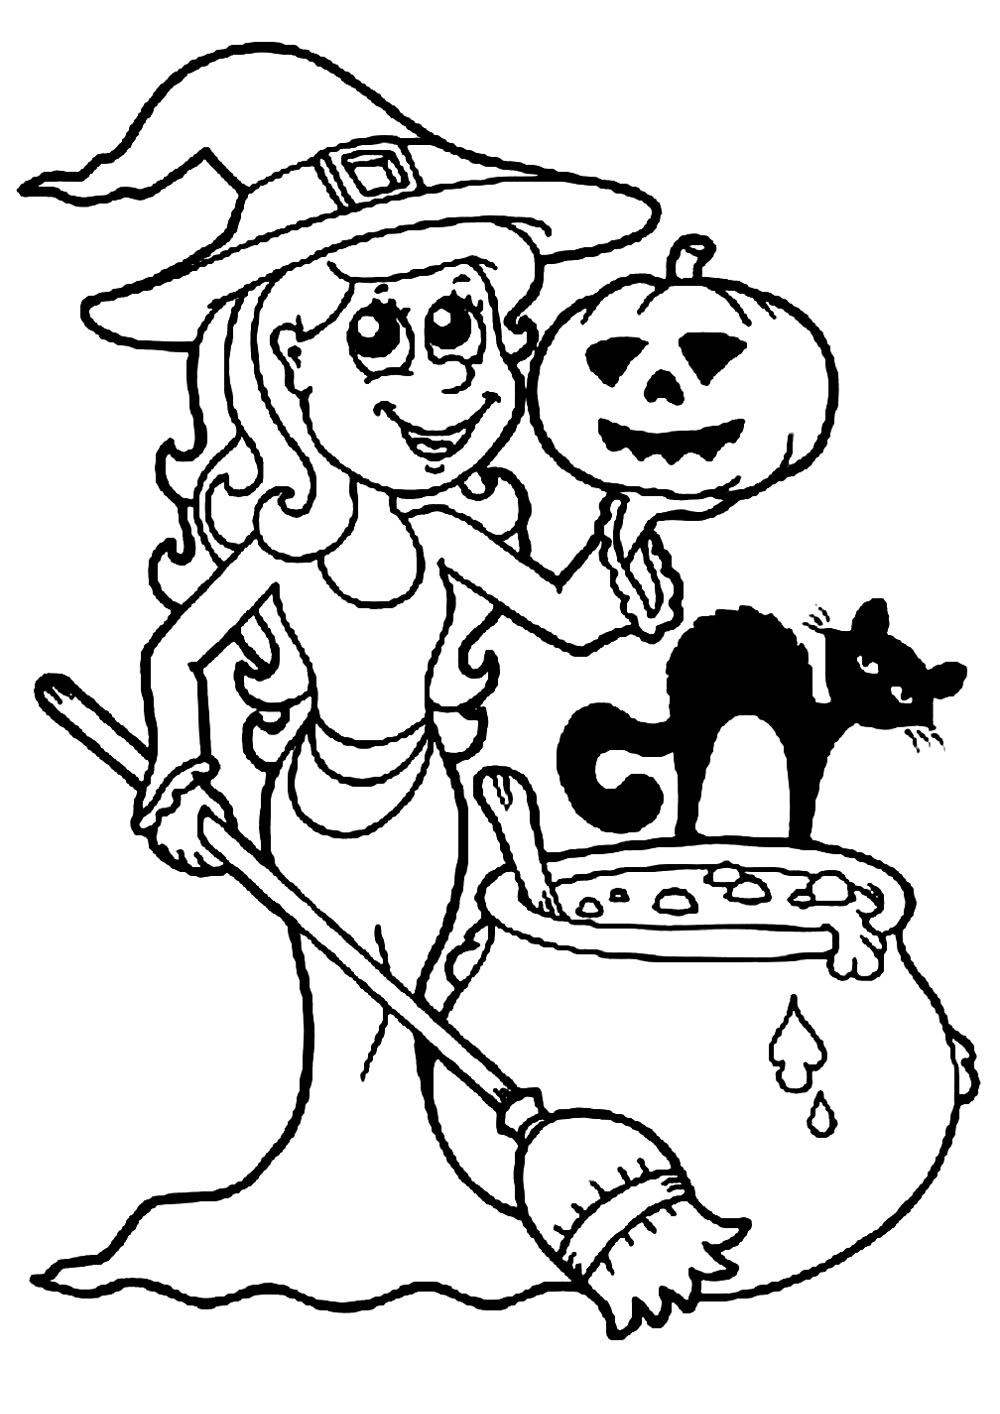 images for coloring for toddlers images for coloring for toddlers images toddlers coloring for for